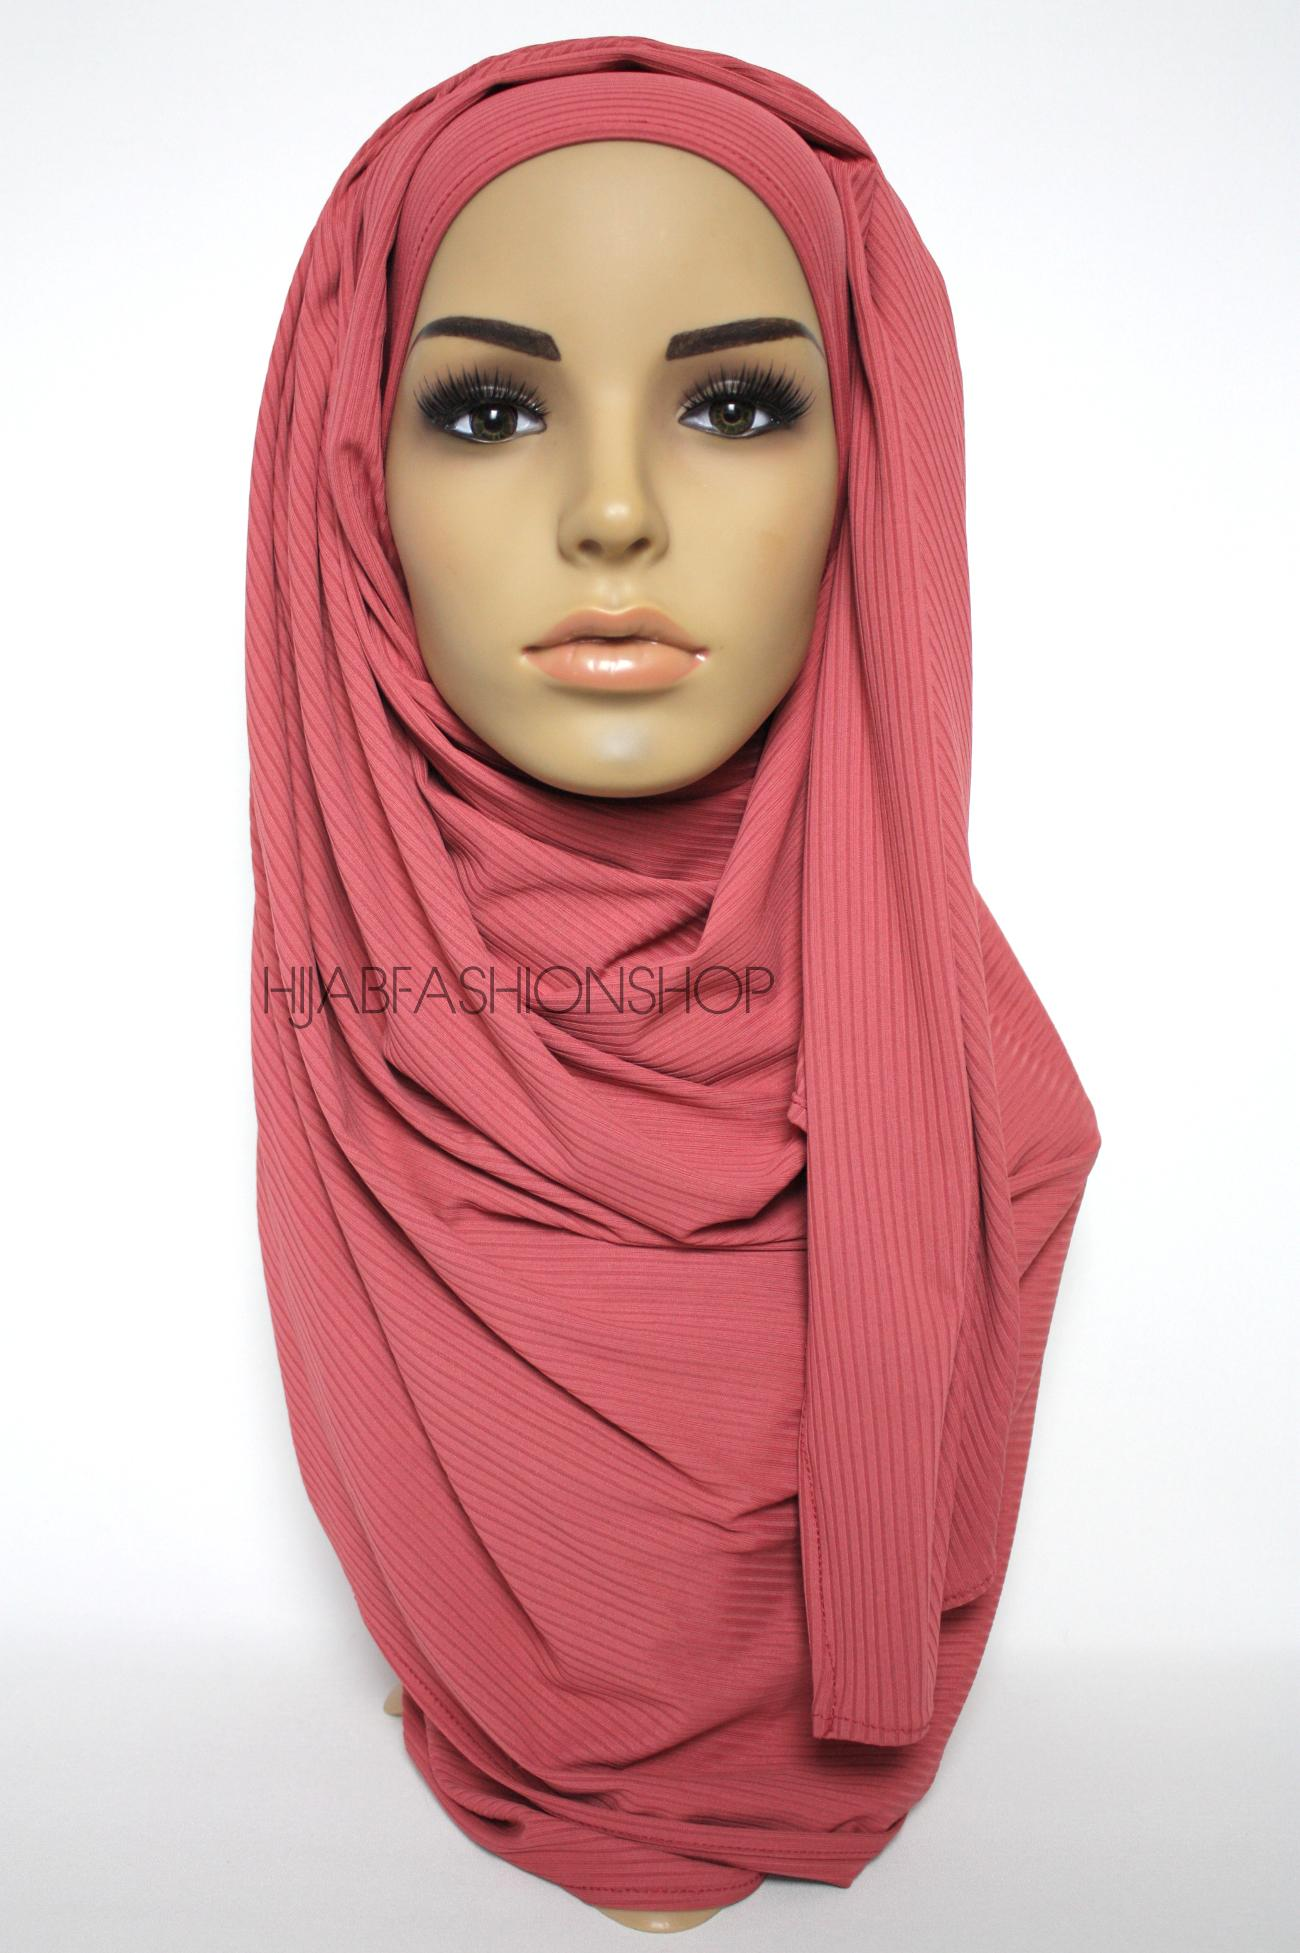 watermelon ribbed jersey hijab